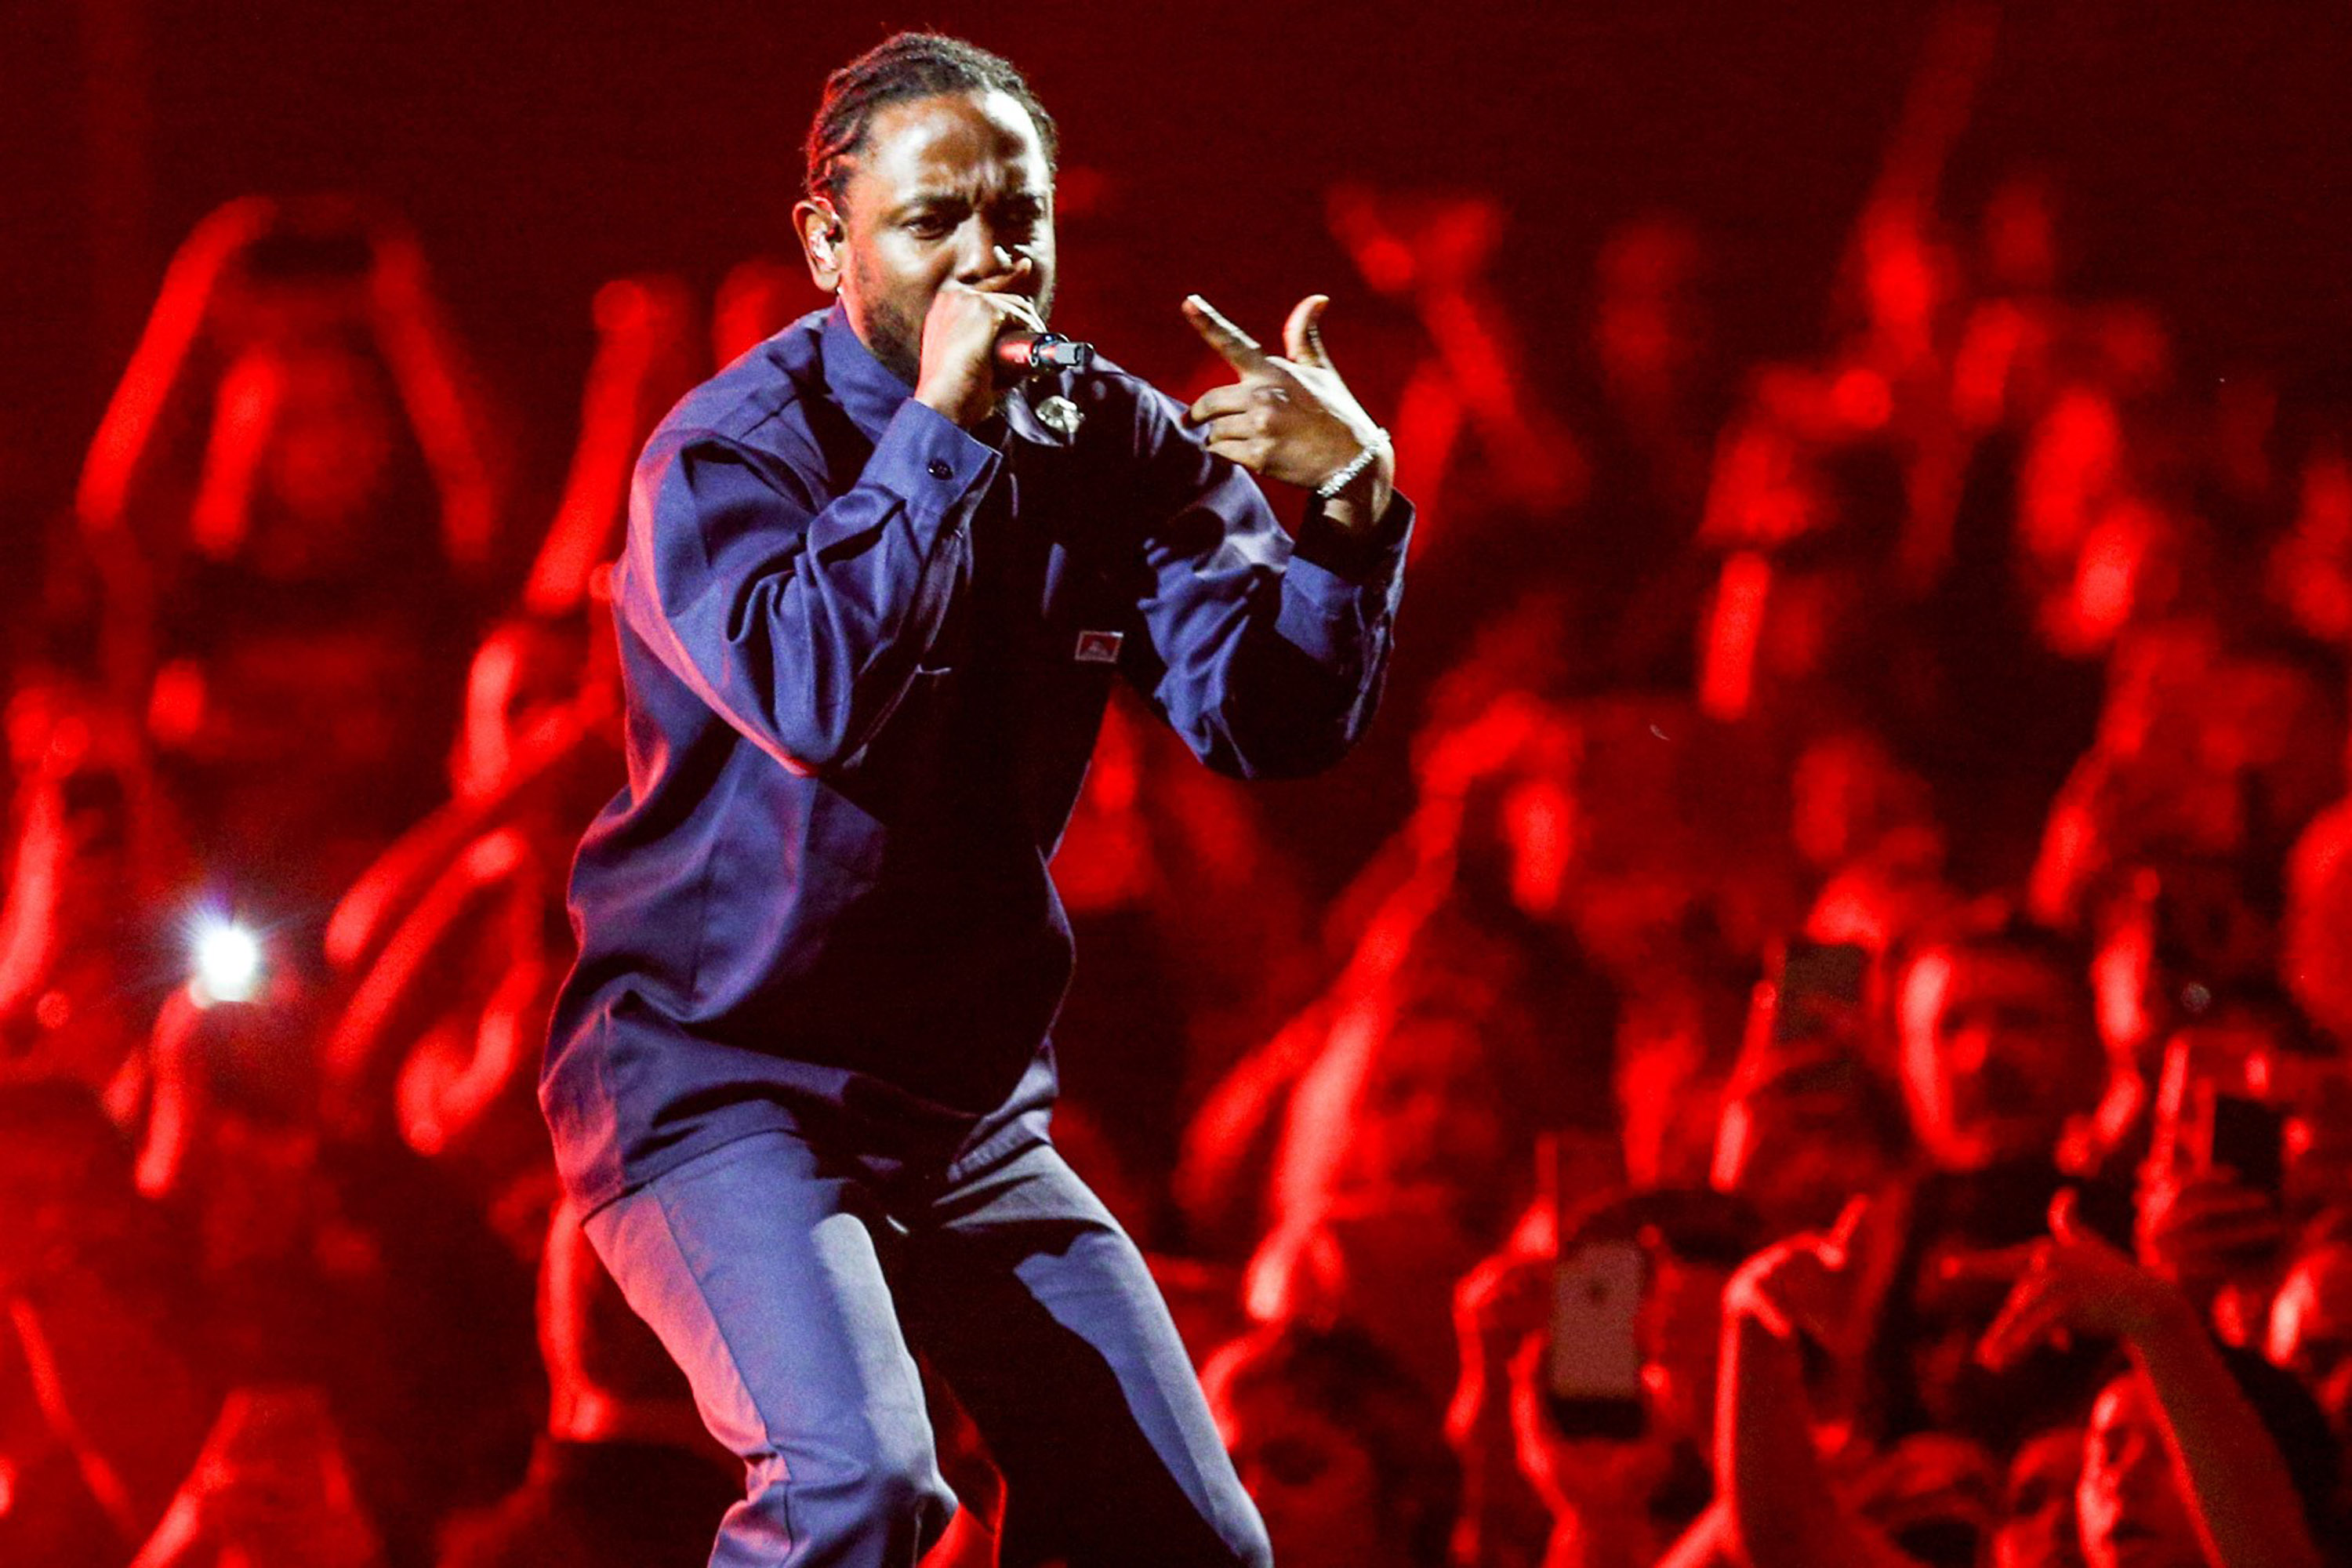 Kendrick Lamar Joins The Weeknd During The 'Legends of The Fall Tour' At The Forum